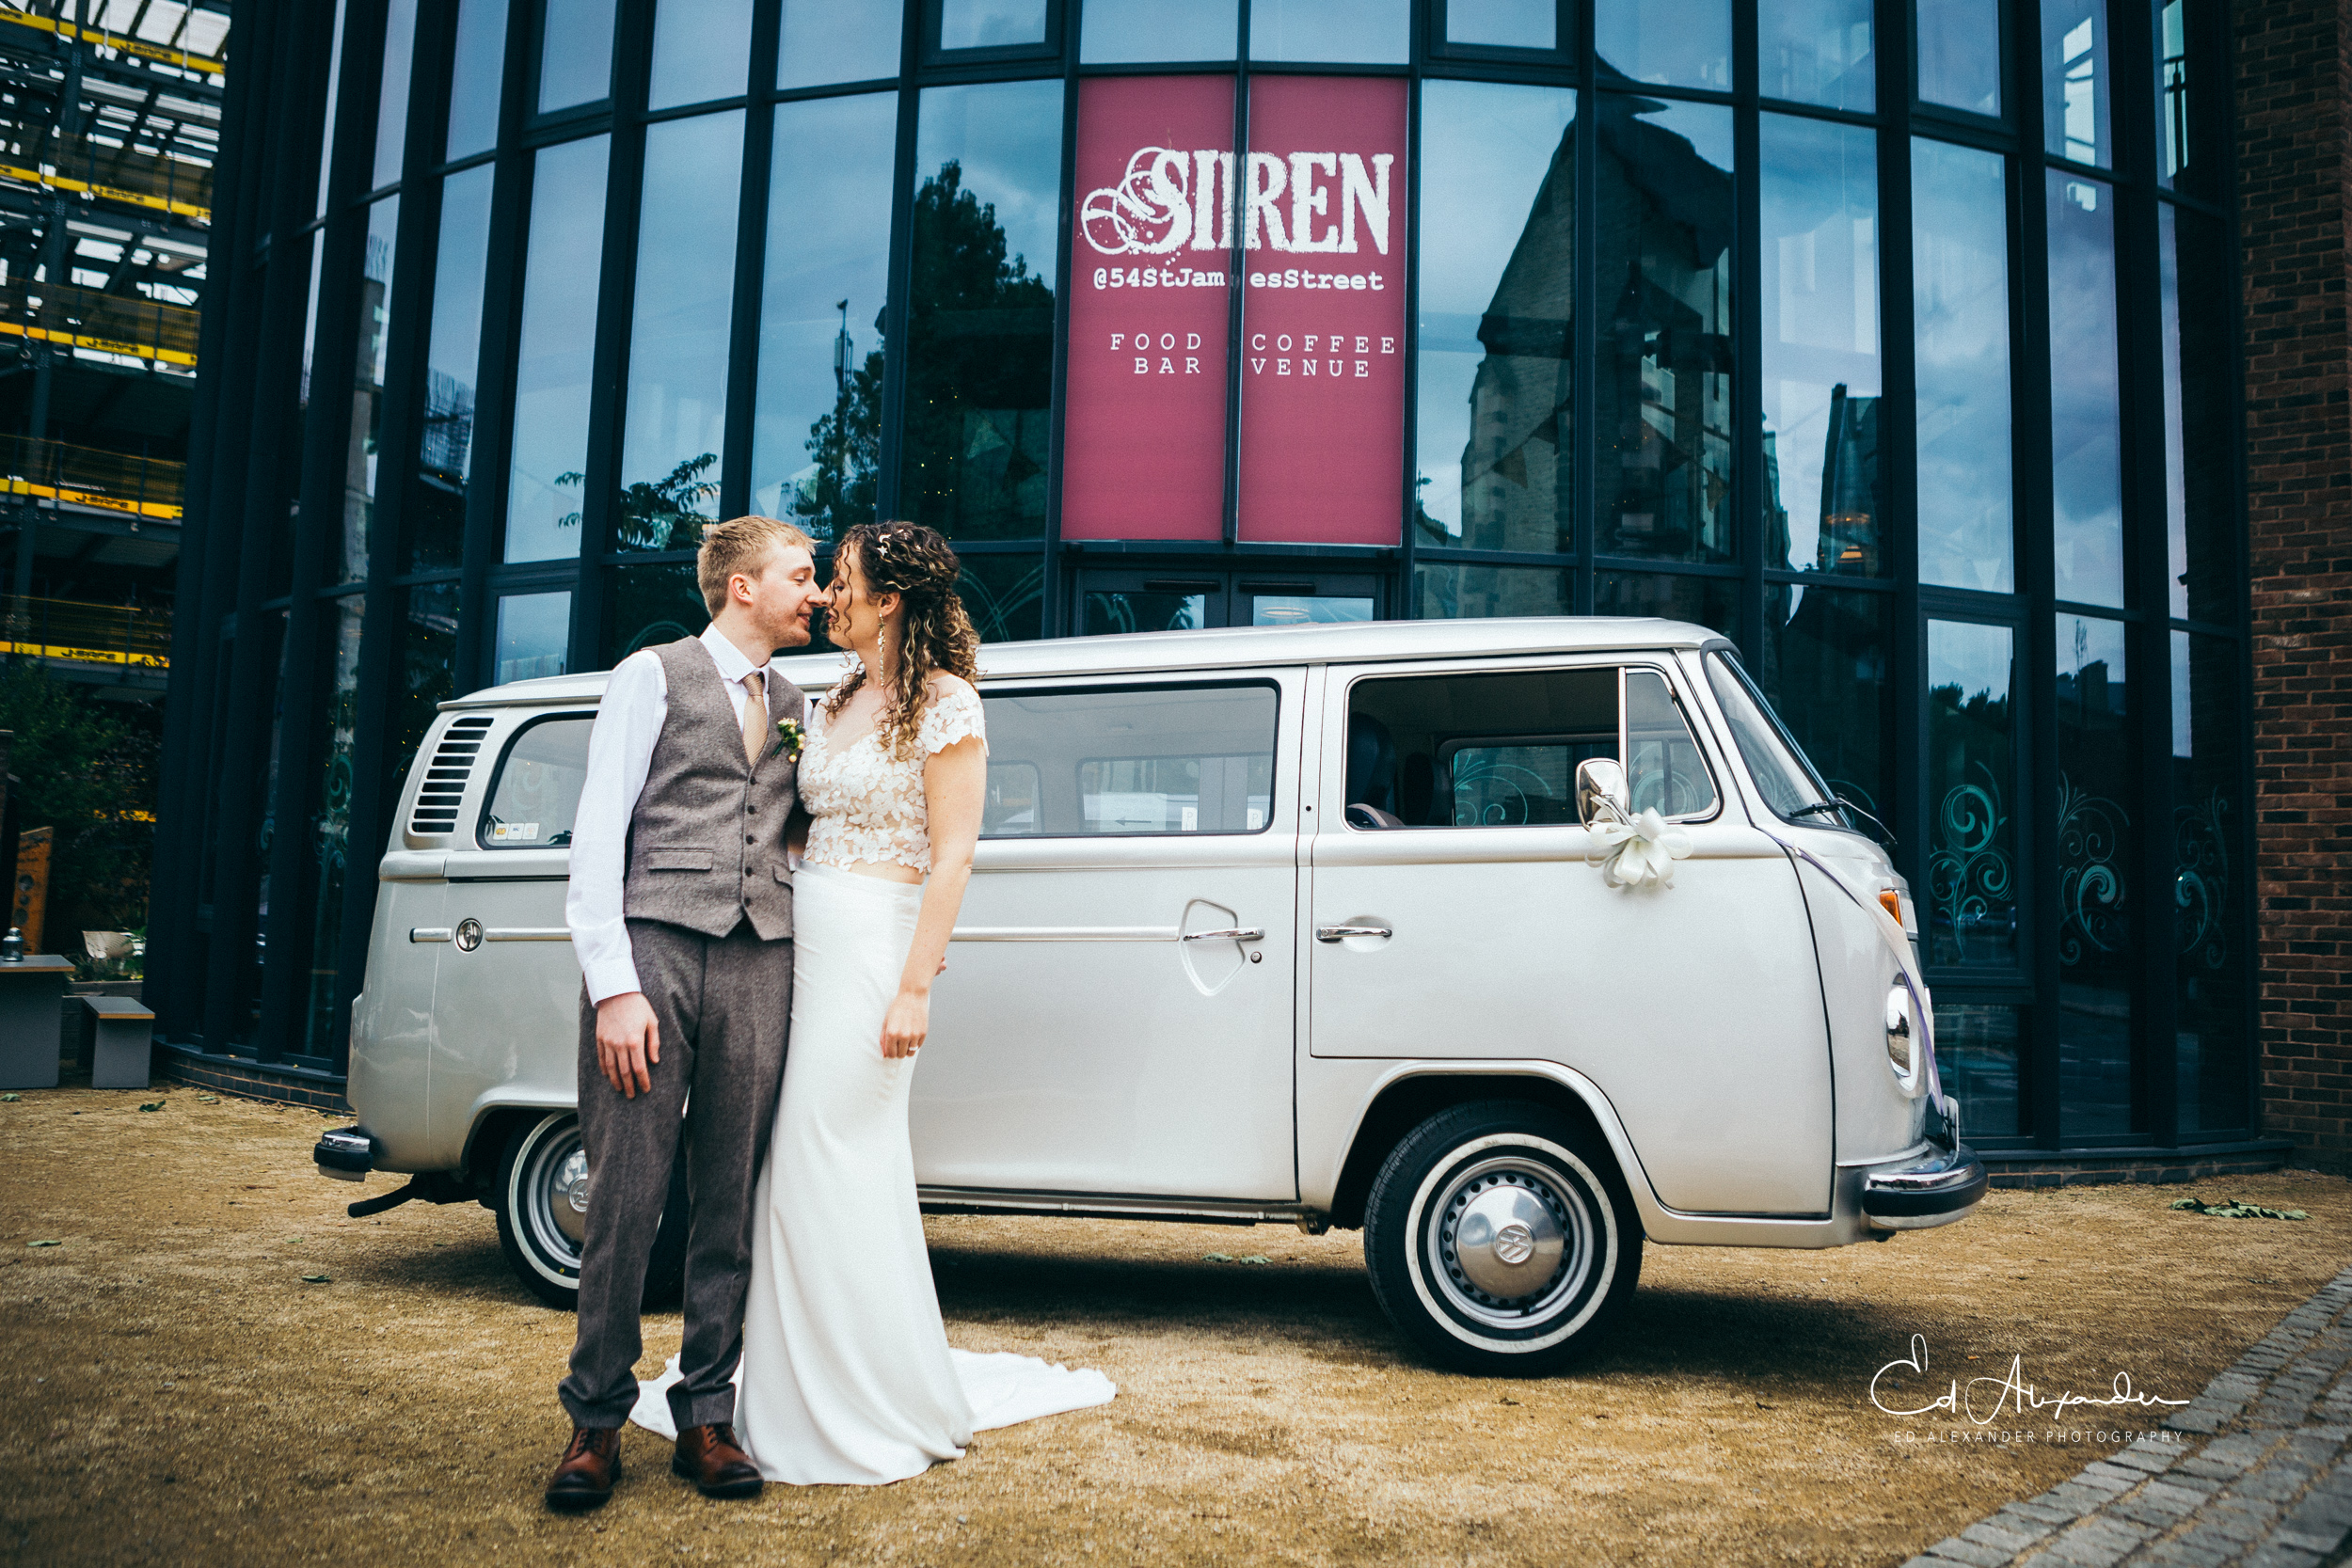 liverpool wedding photography bride groom campervan vw